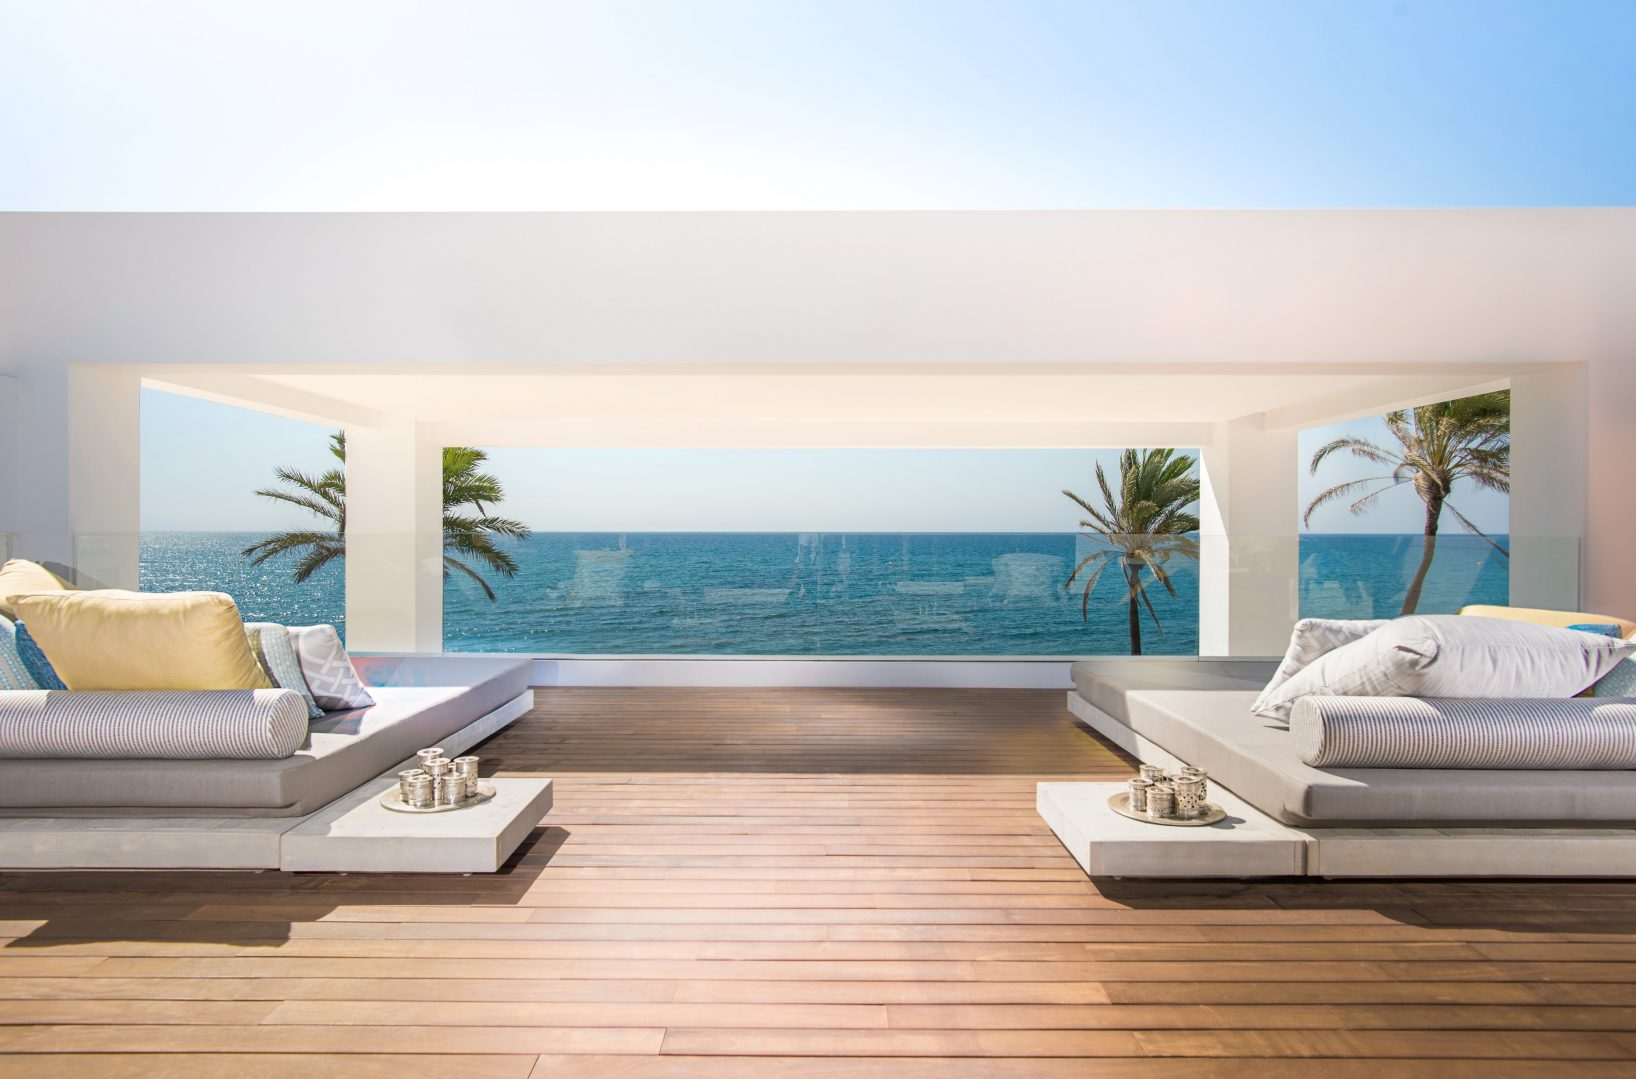 Do the seasons affect property demand in Marbella?